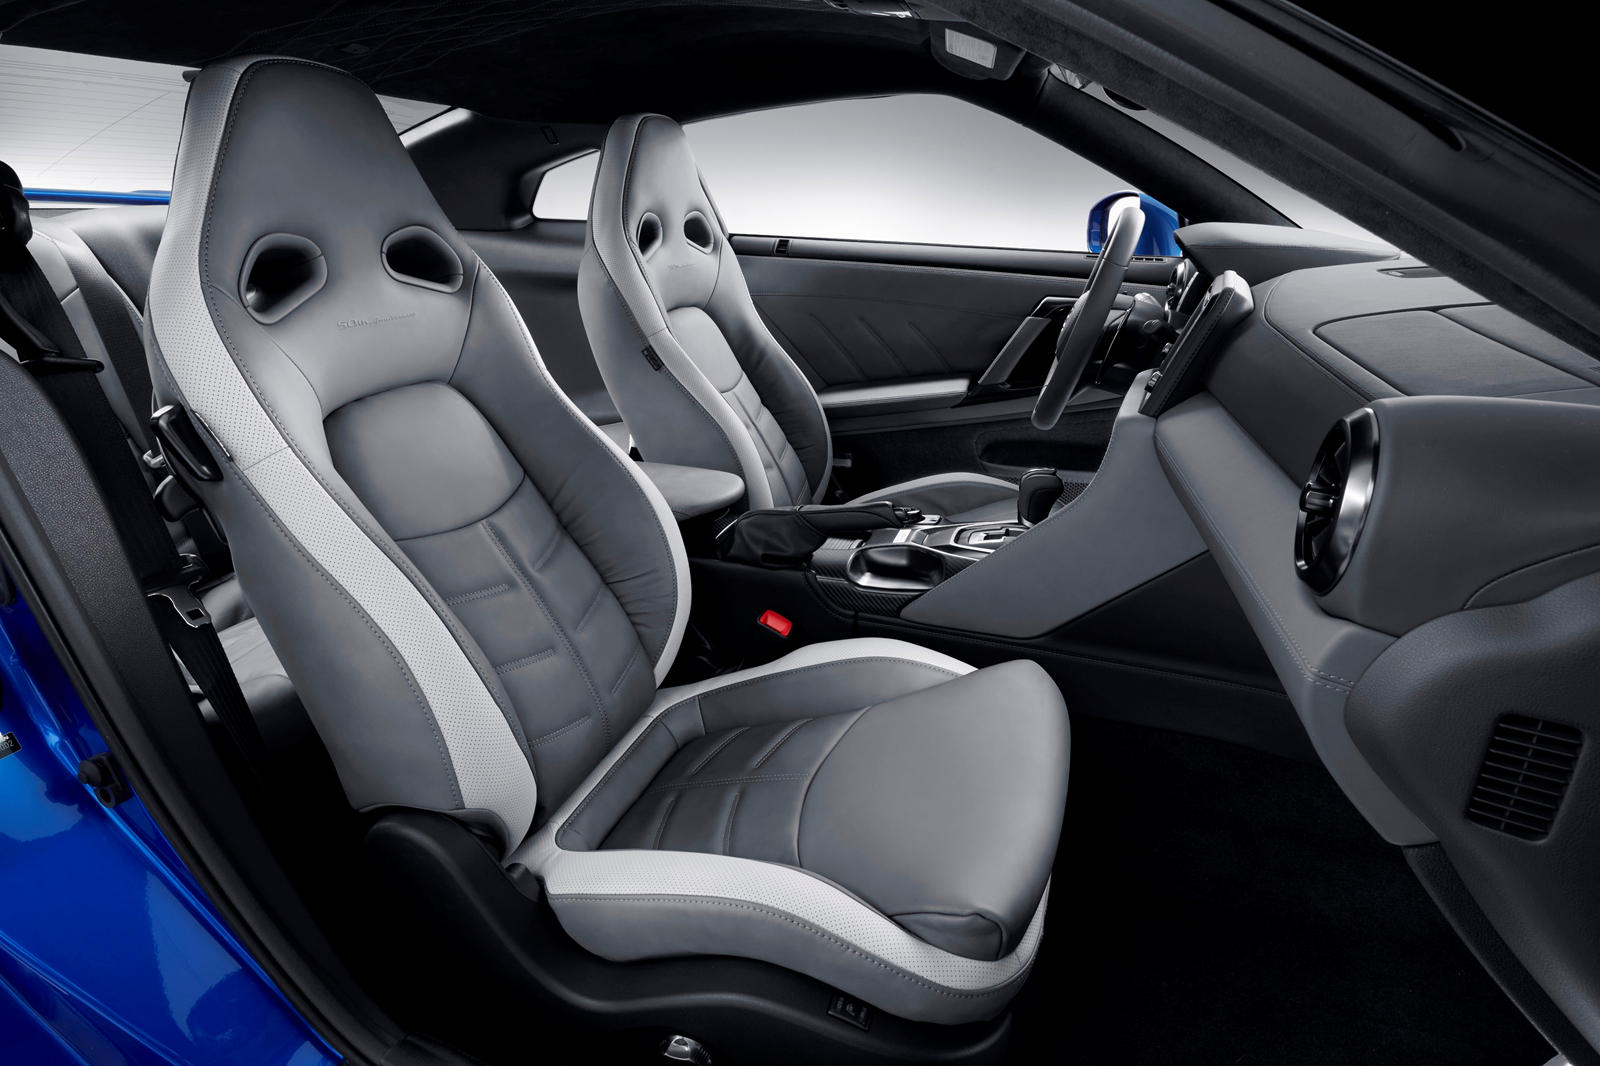 Nissan GT-R coupe seats